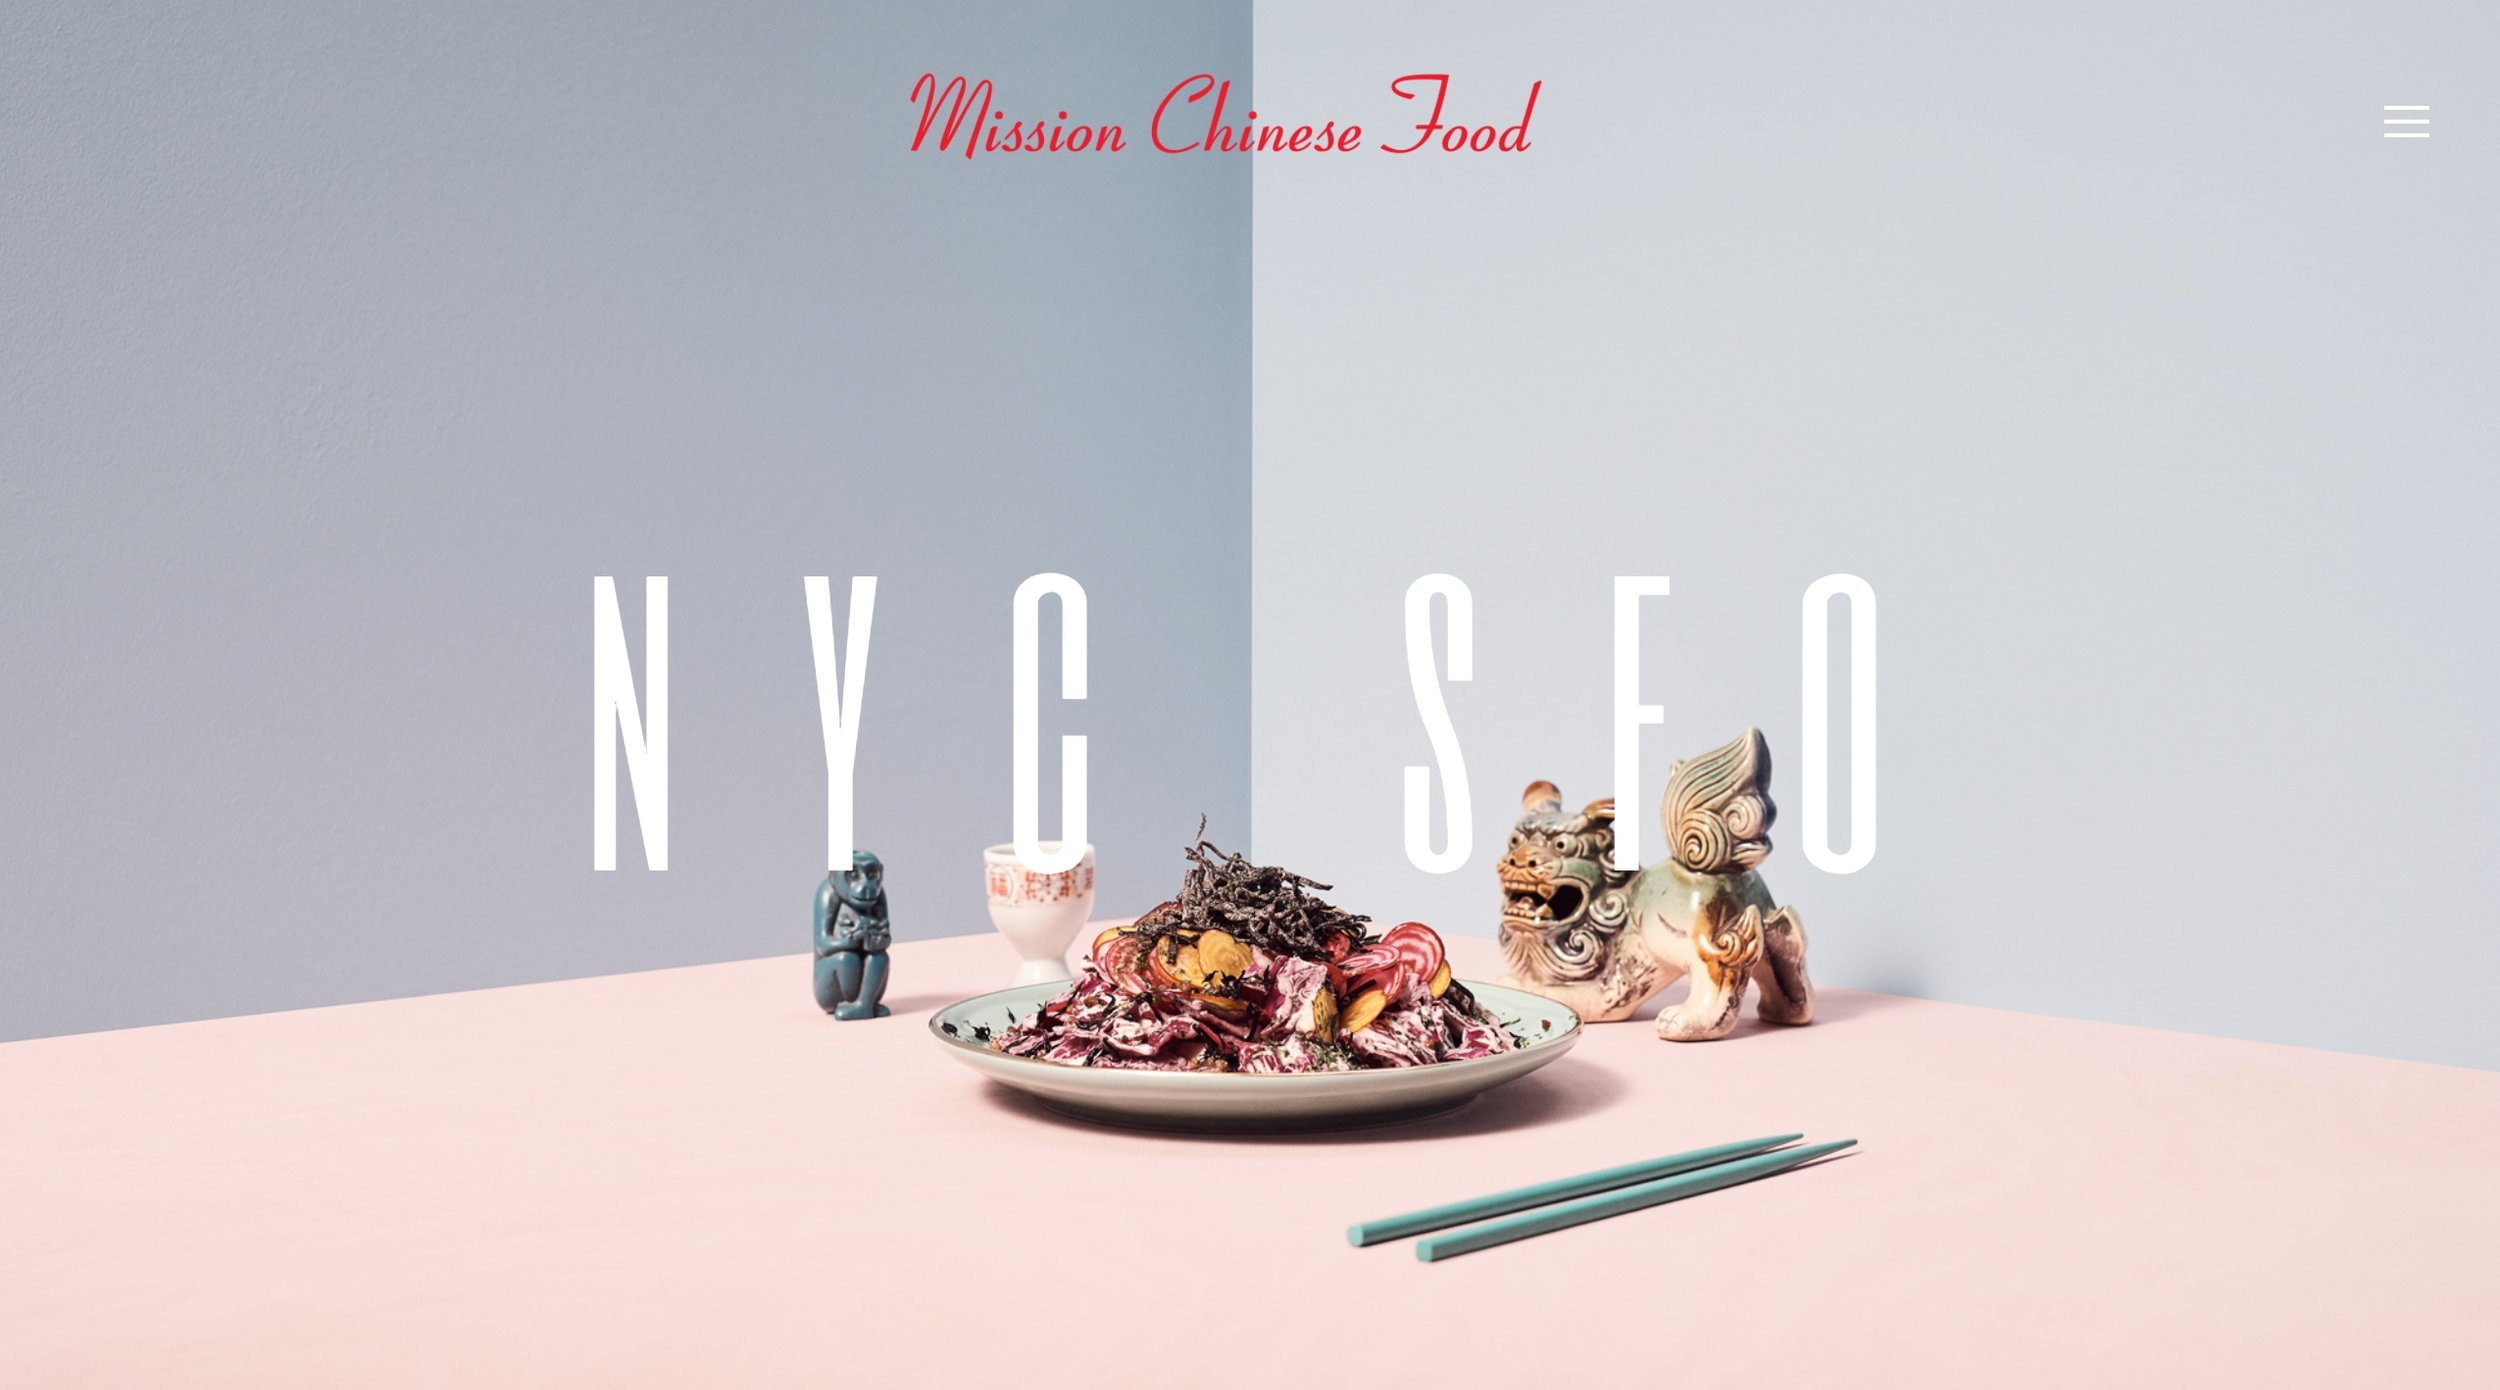 Mission Chinese Food's custom website was designed to be part of Squarespace's ad campaign.